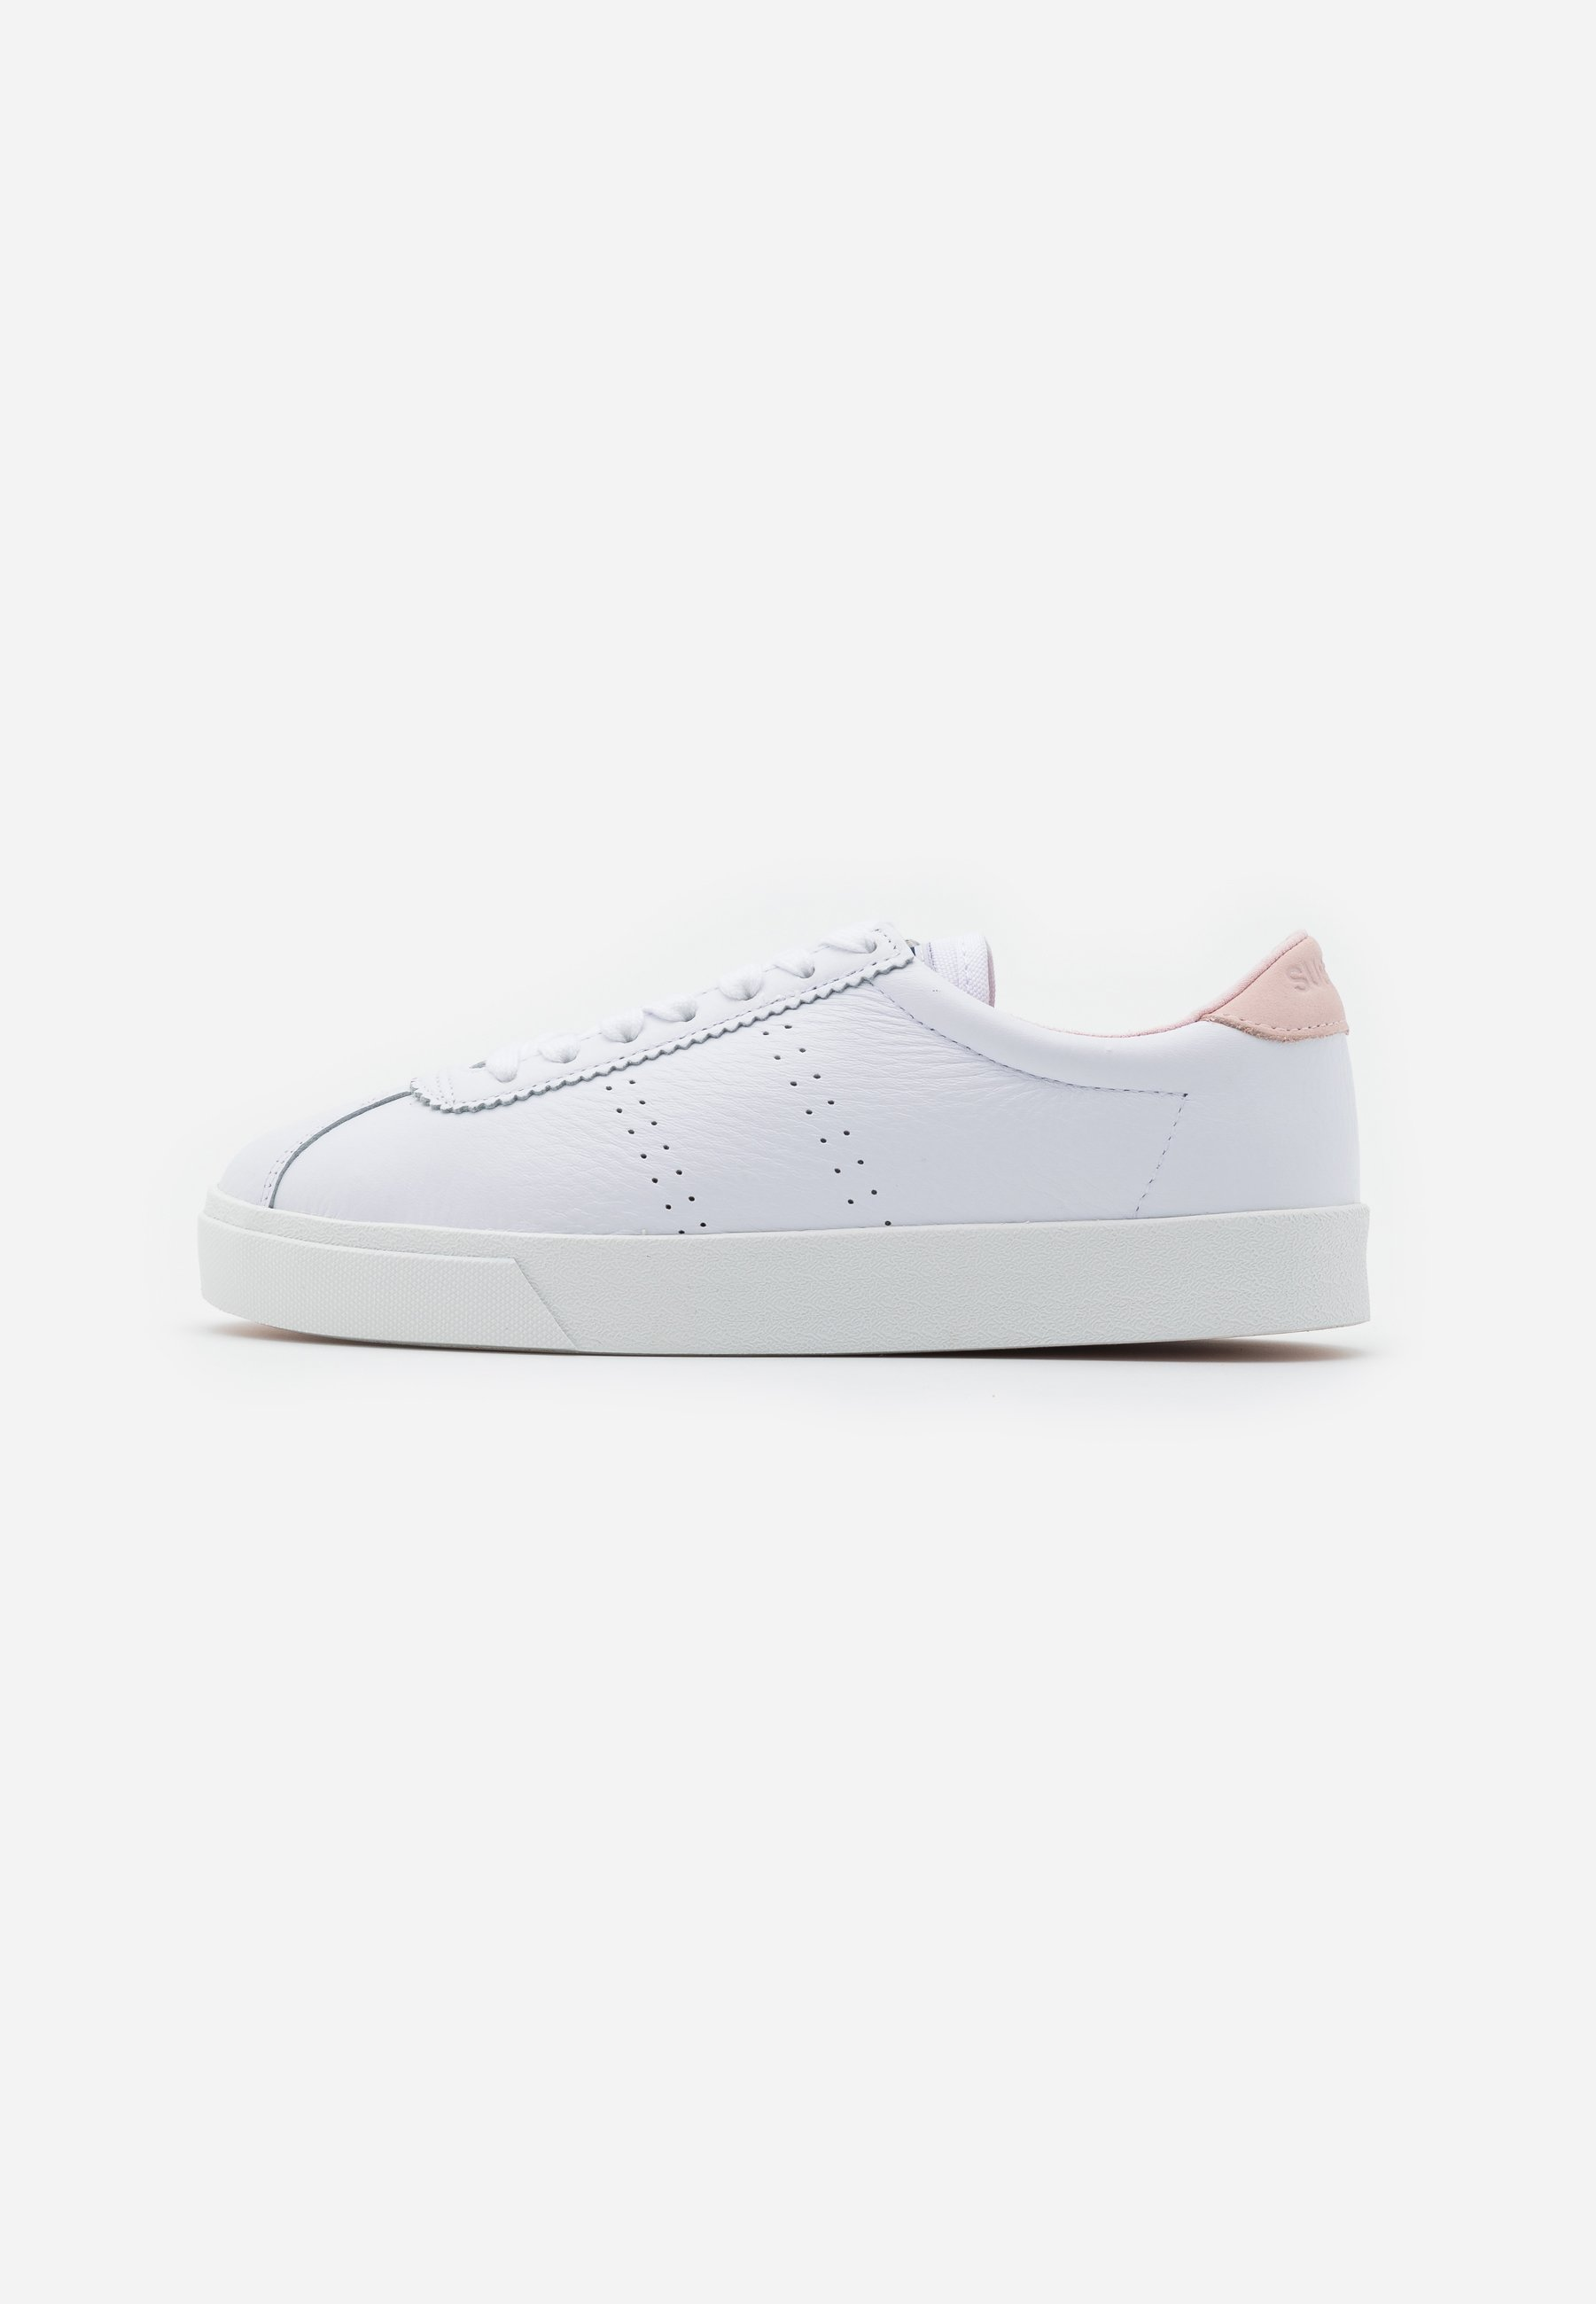 Superga 2843 Joggesko whitepink peach blush Zalando.no